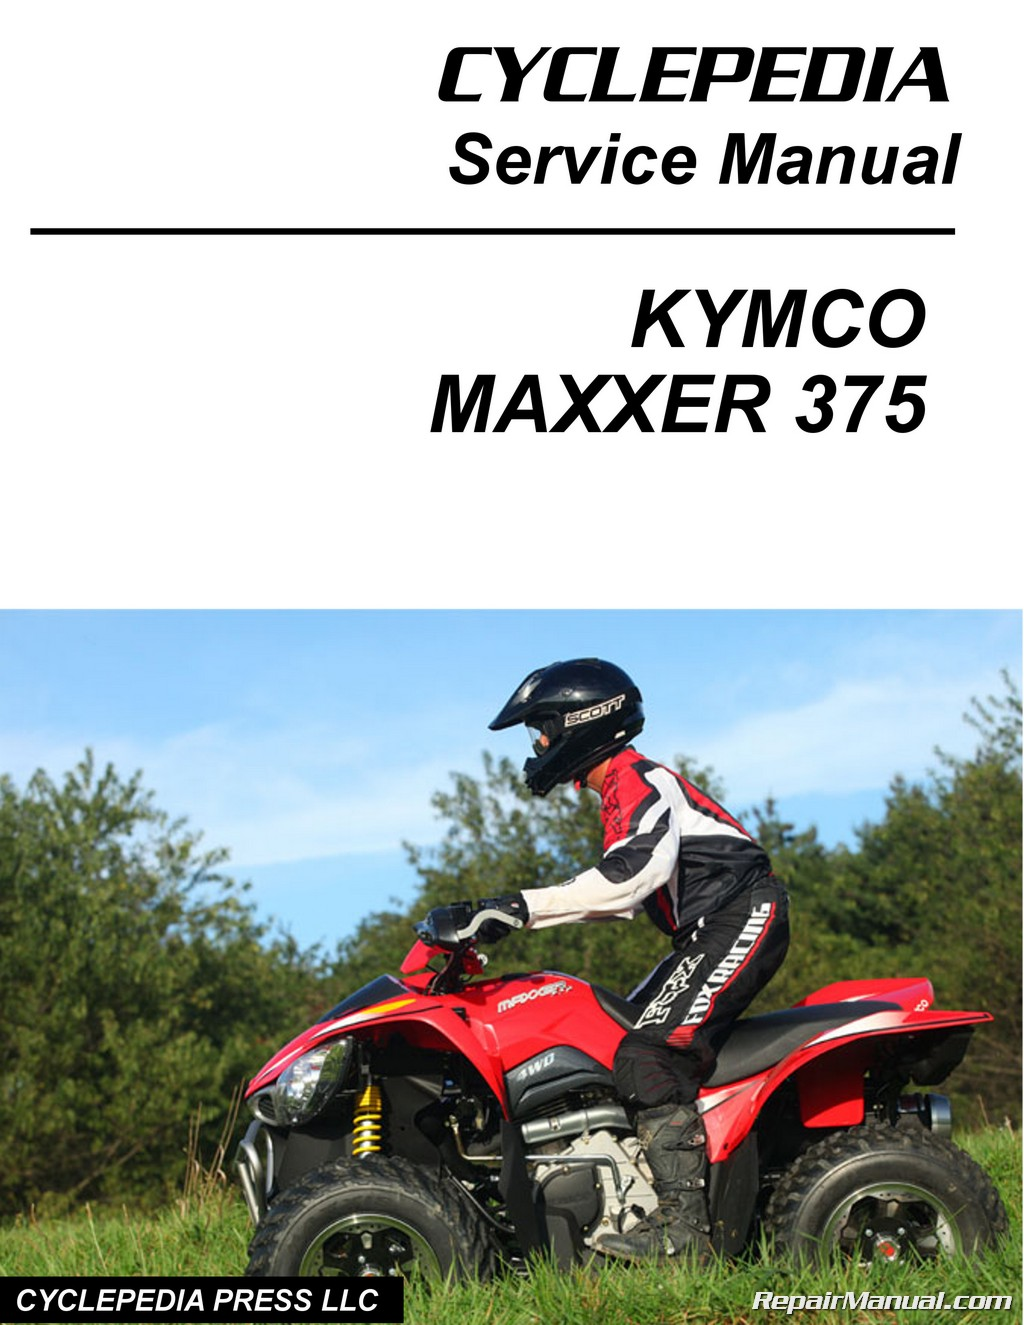 kymco maxxer 375 atv service manual printed by cyclepedia. Black Bedroom Furniture Sets. Home Design Ideas